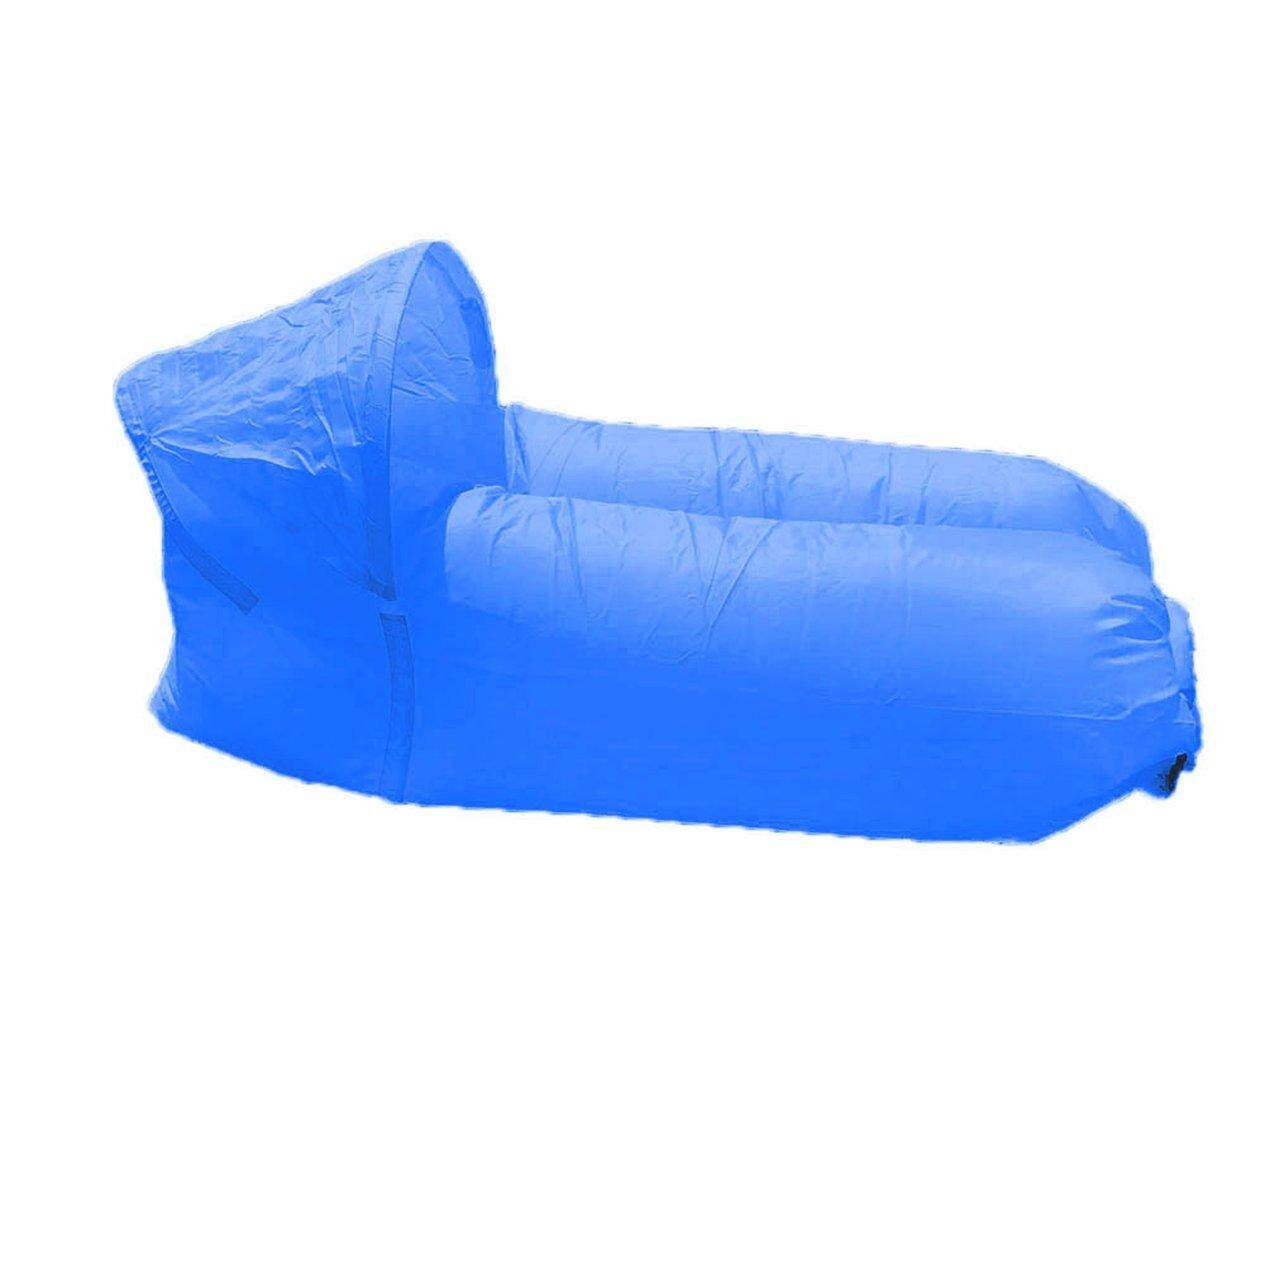 Hot Sellers Portable Travel Lying Bed Lazy Air Cushion Inflatable sofa camping sleeping